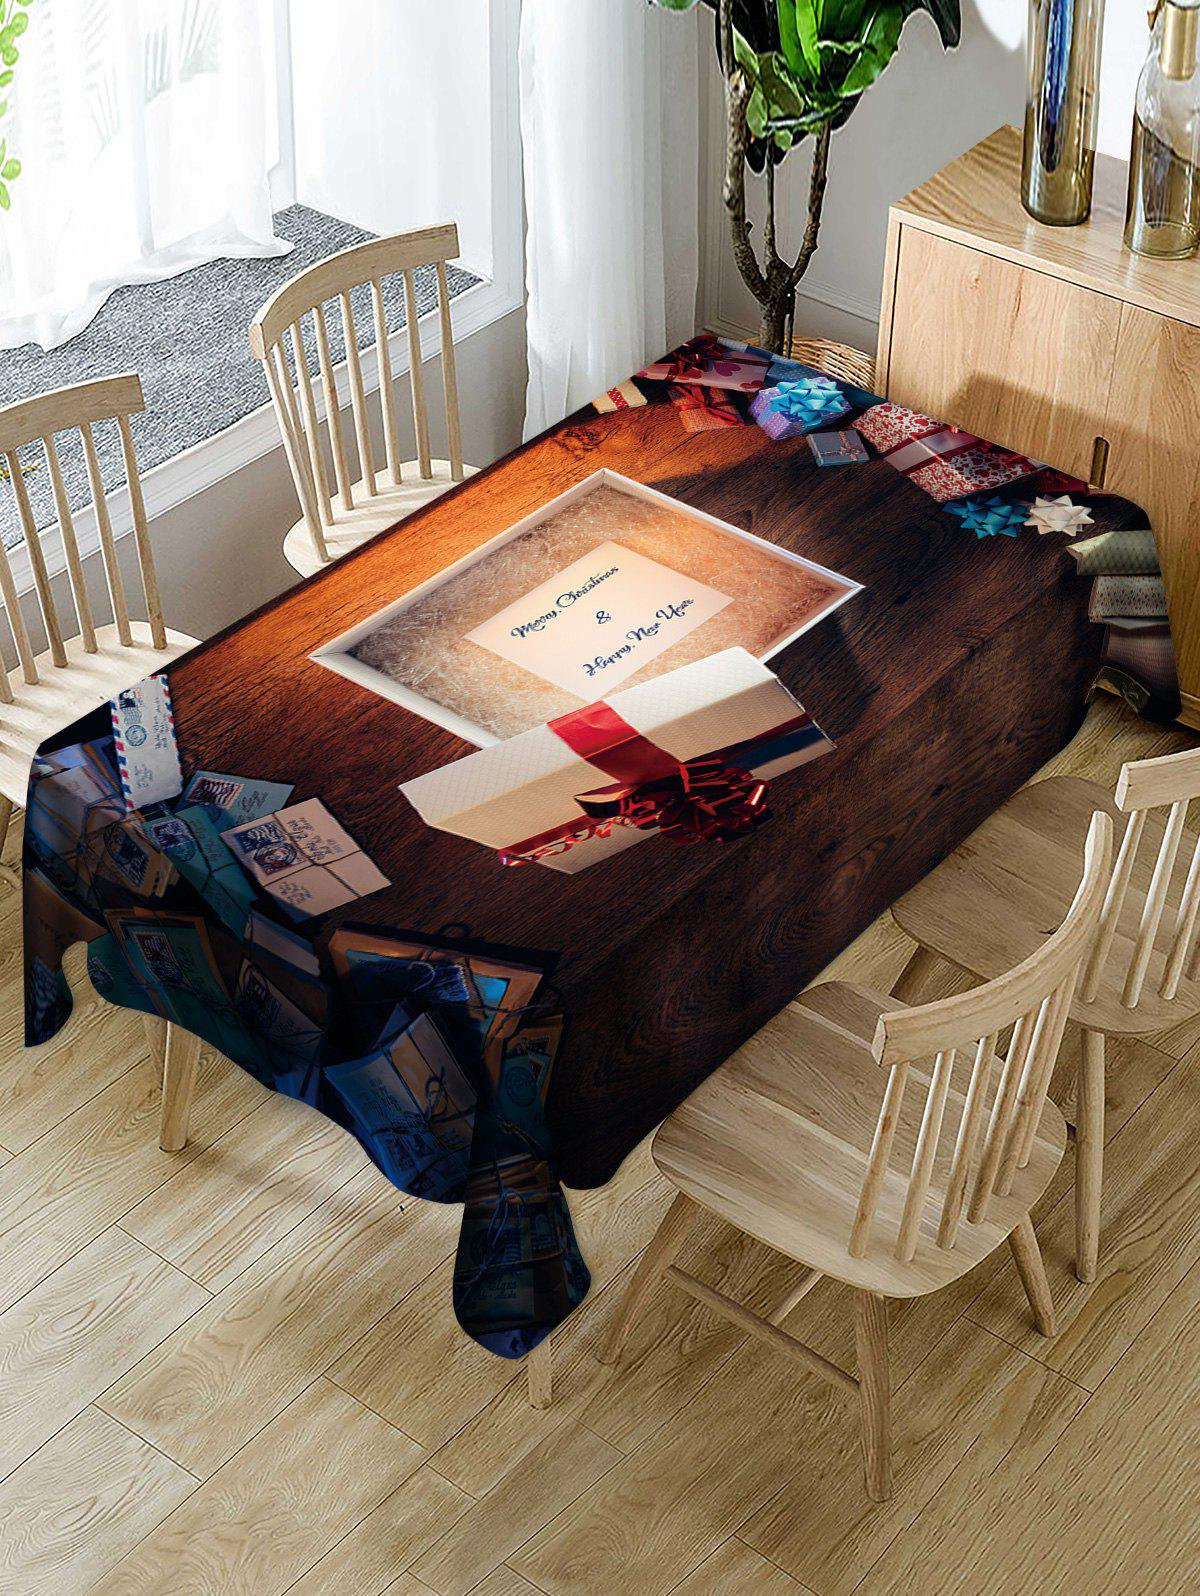 Trendy Christmas Gifts and Letters Print Table Cloth